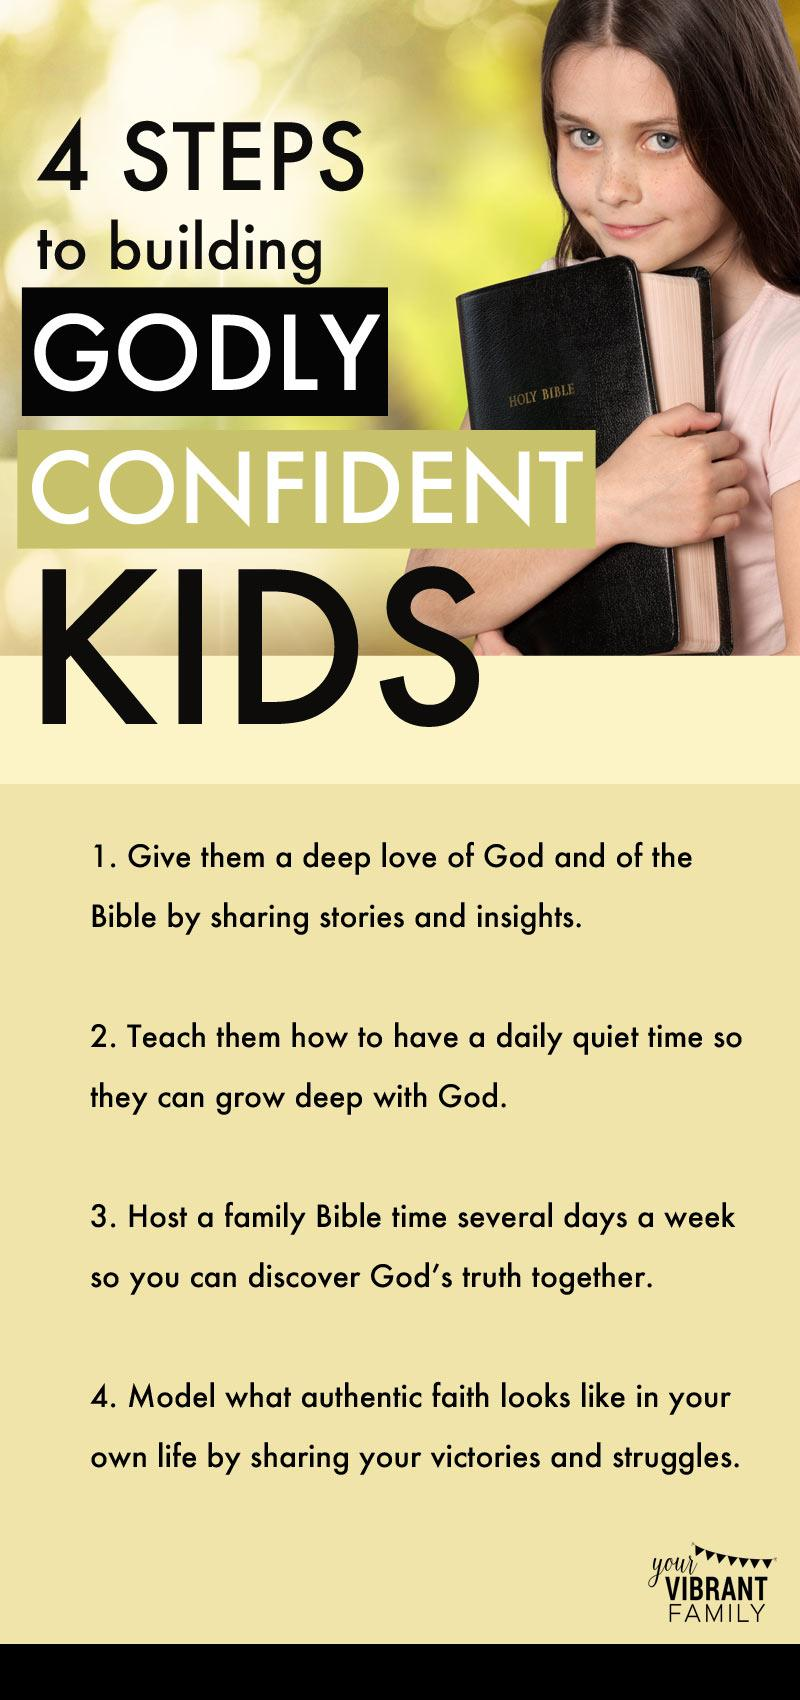 teaching kids love god | teaching children love god | teaching kids confidence | how to teach kids about God | godly confidence kids